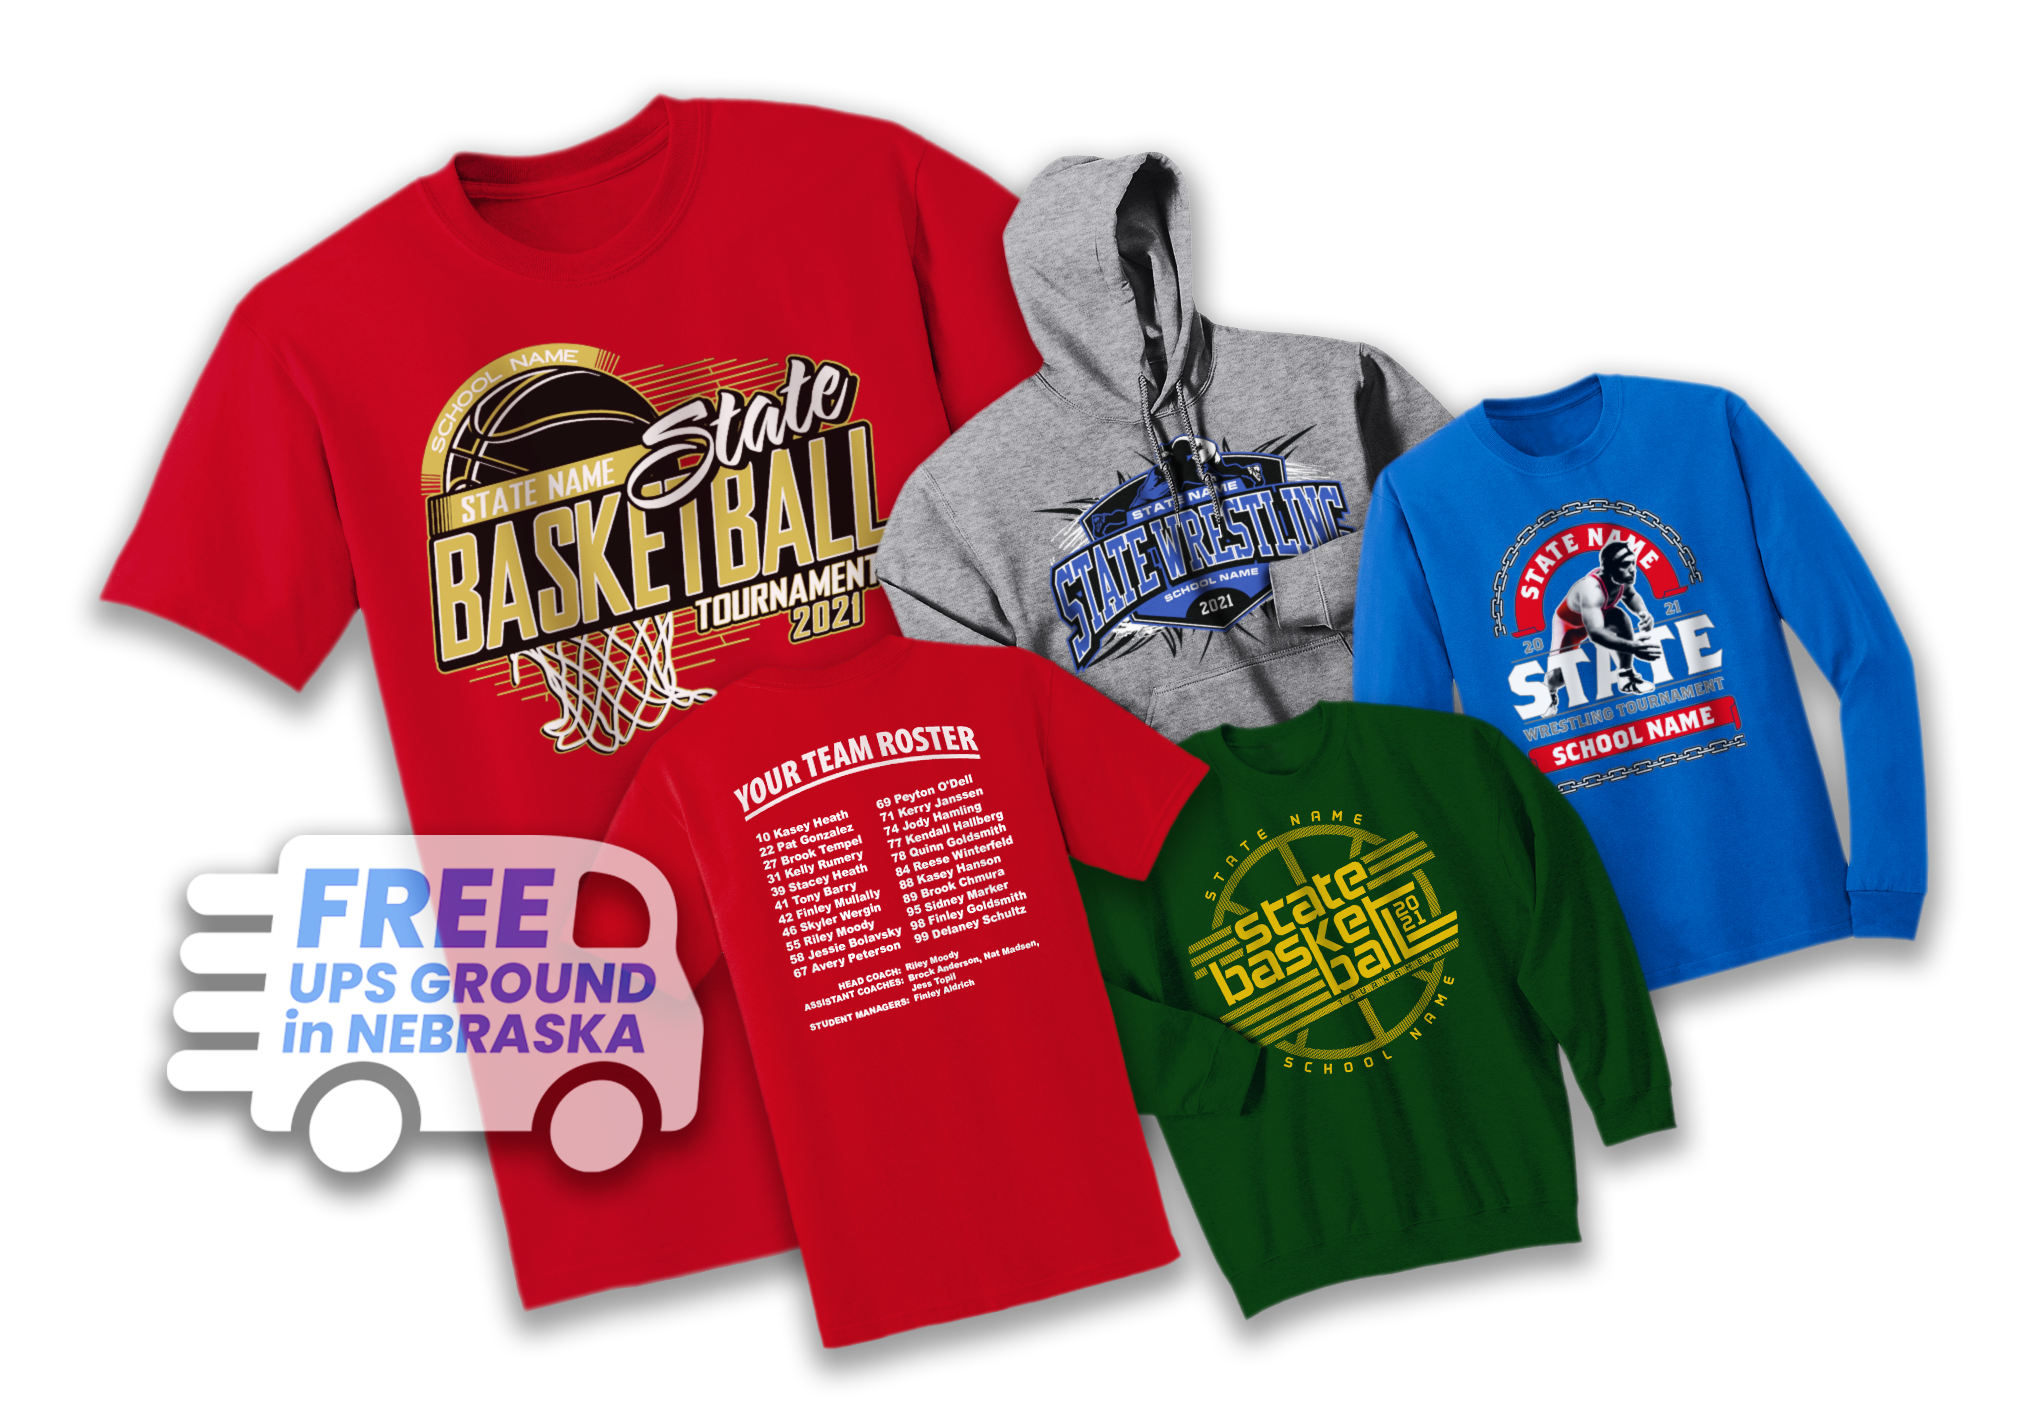 High School State Tournament T-shirts and Designs